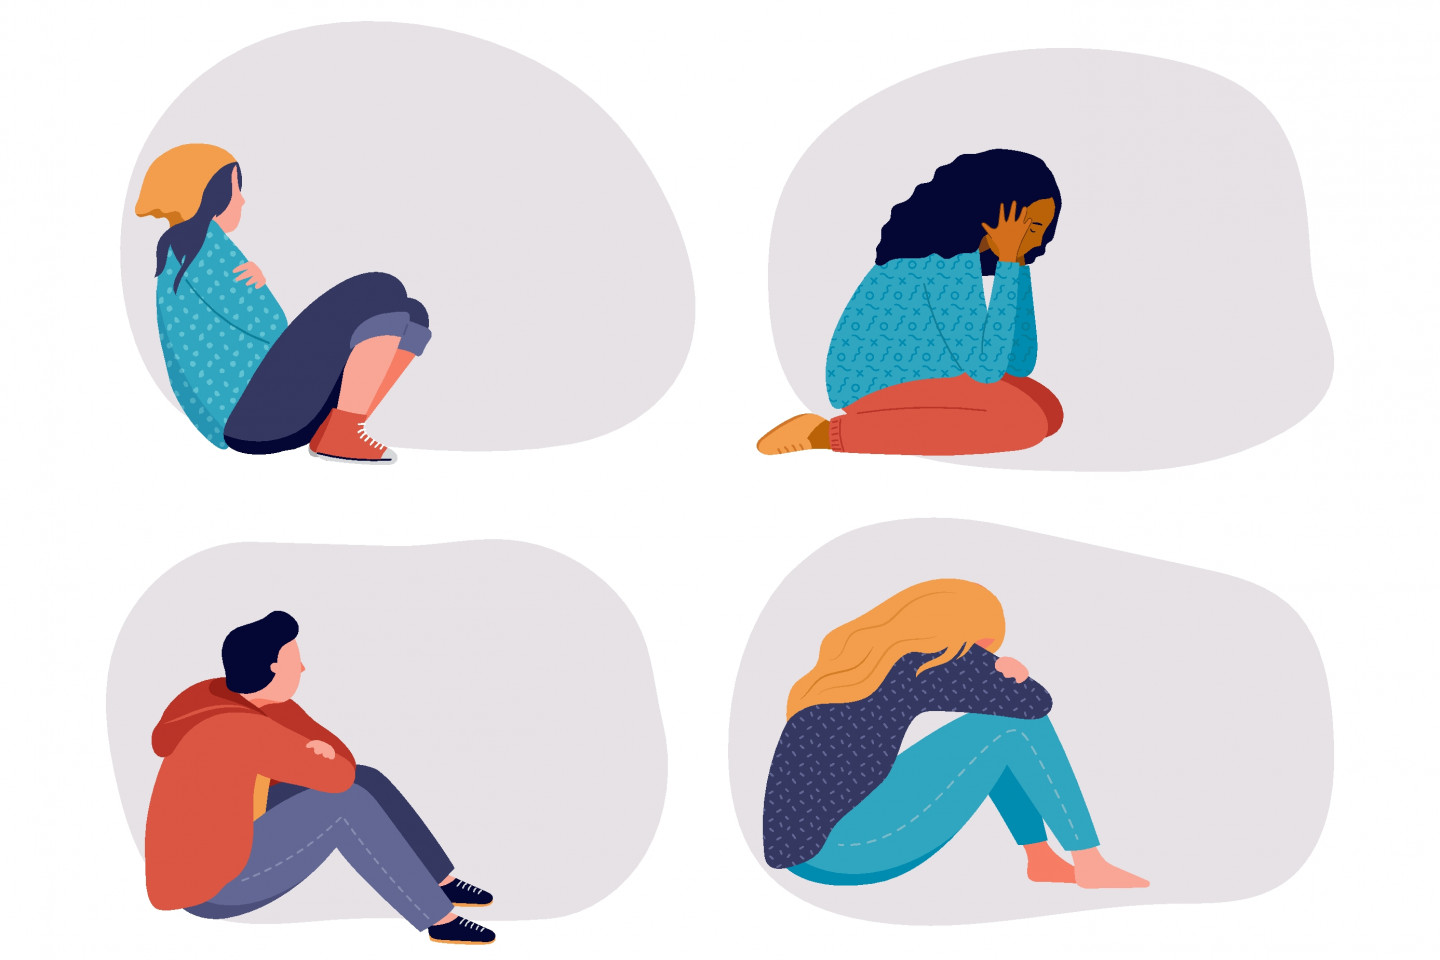 An illustration of several youth sitting down, appearing dejected or depressed.